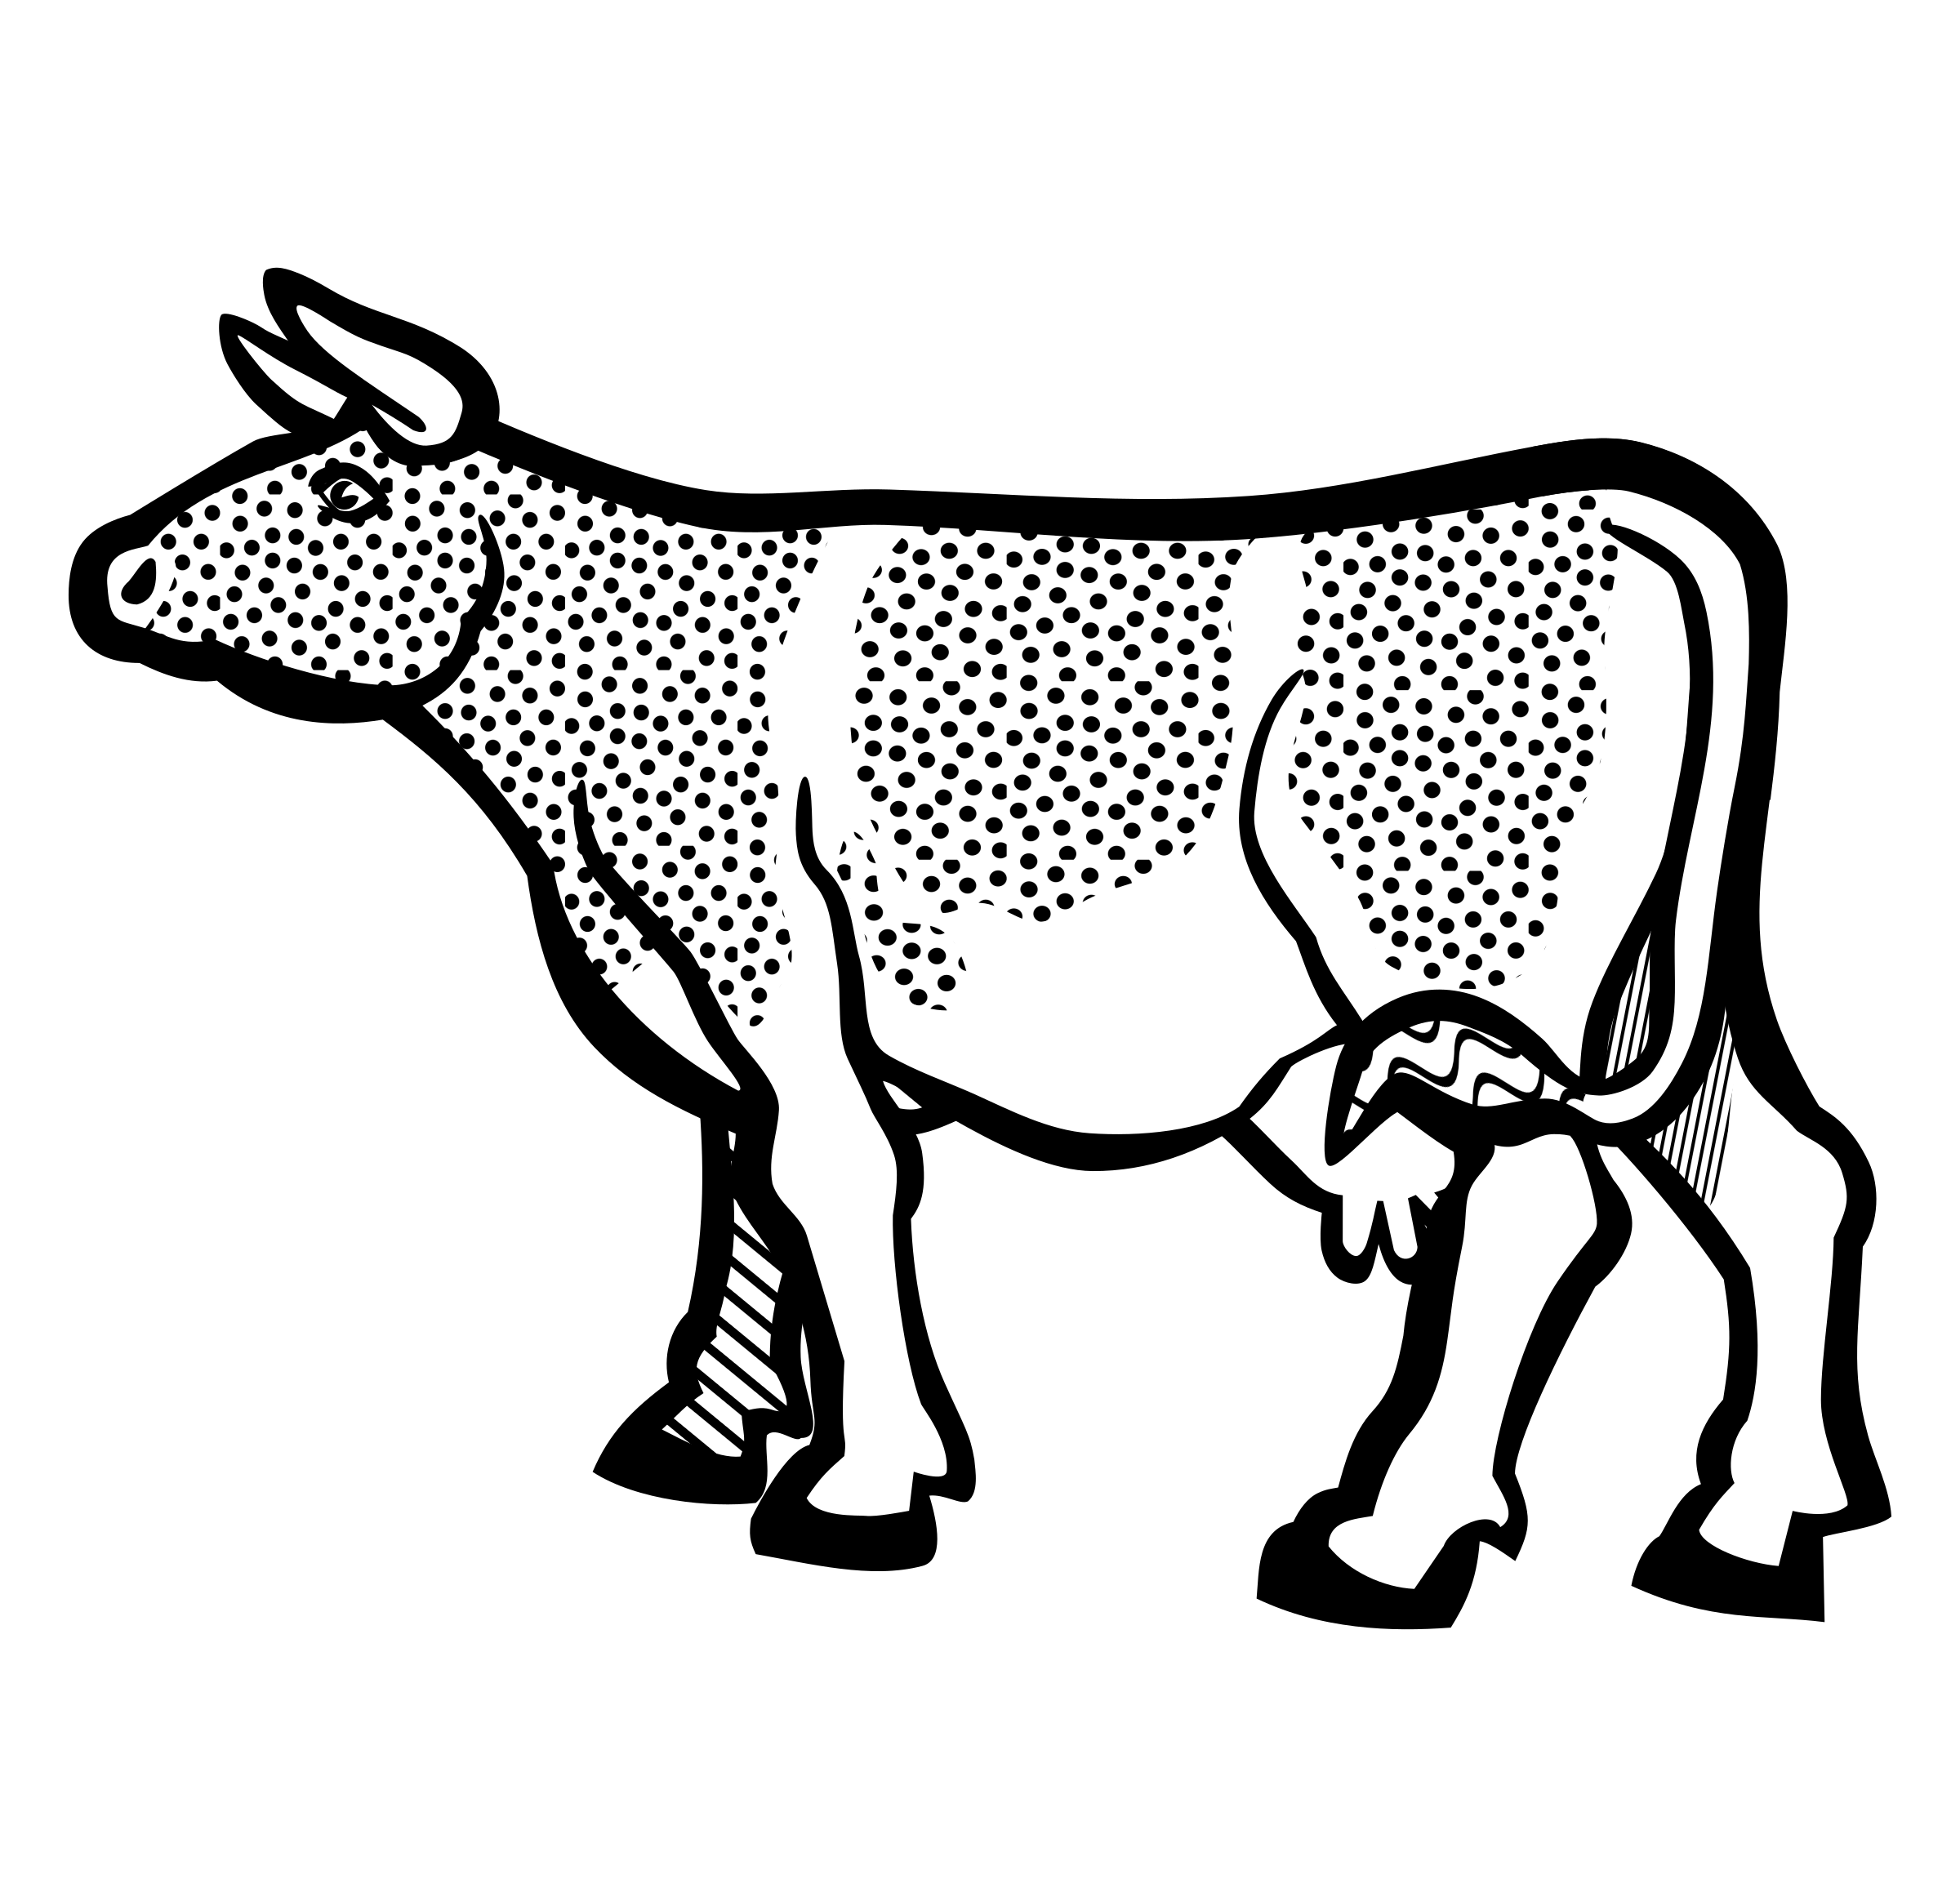 cow2 - lineart by frankes